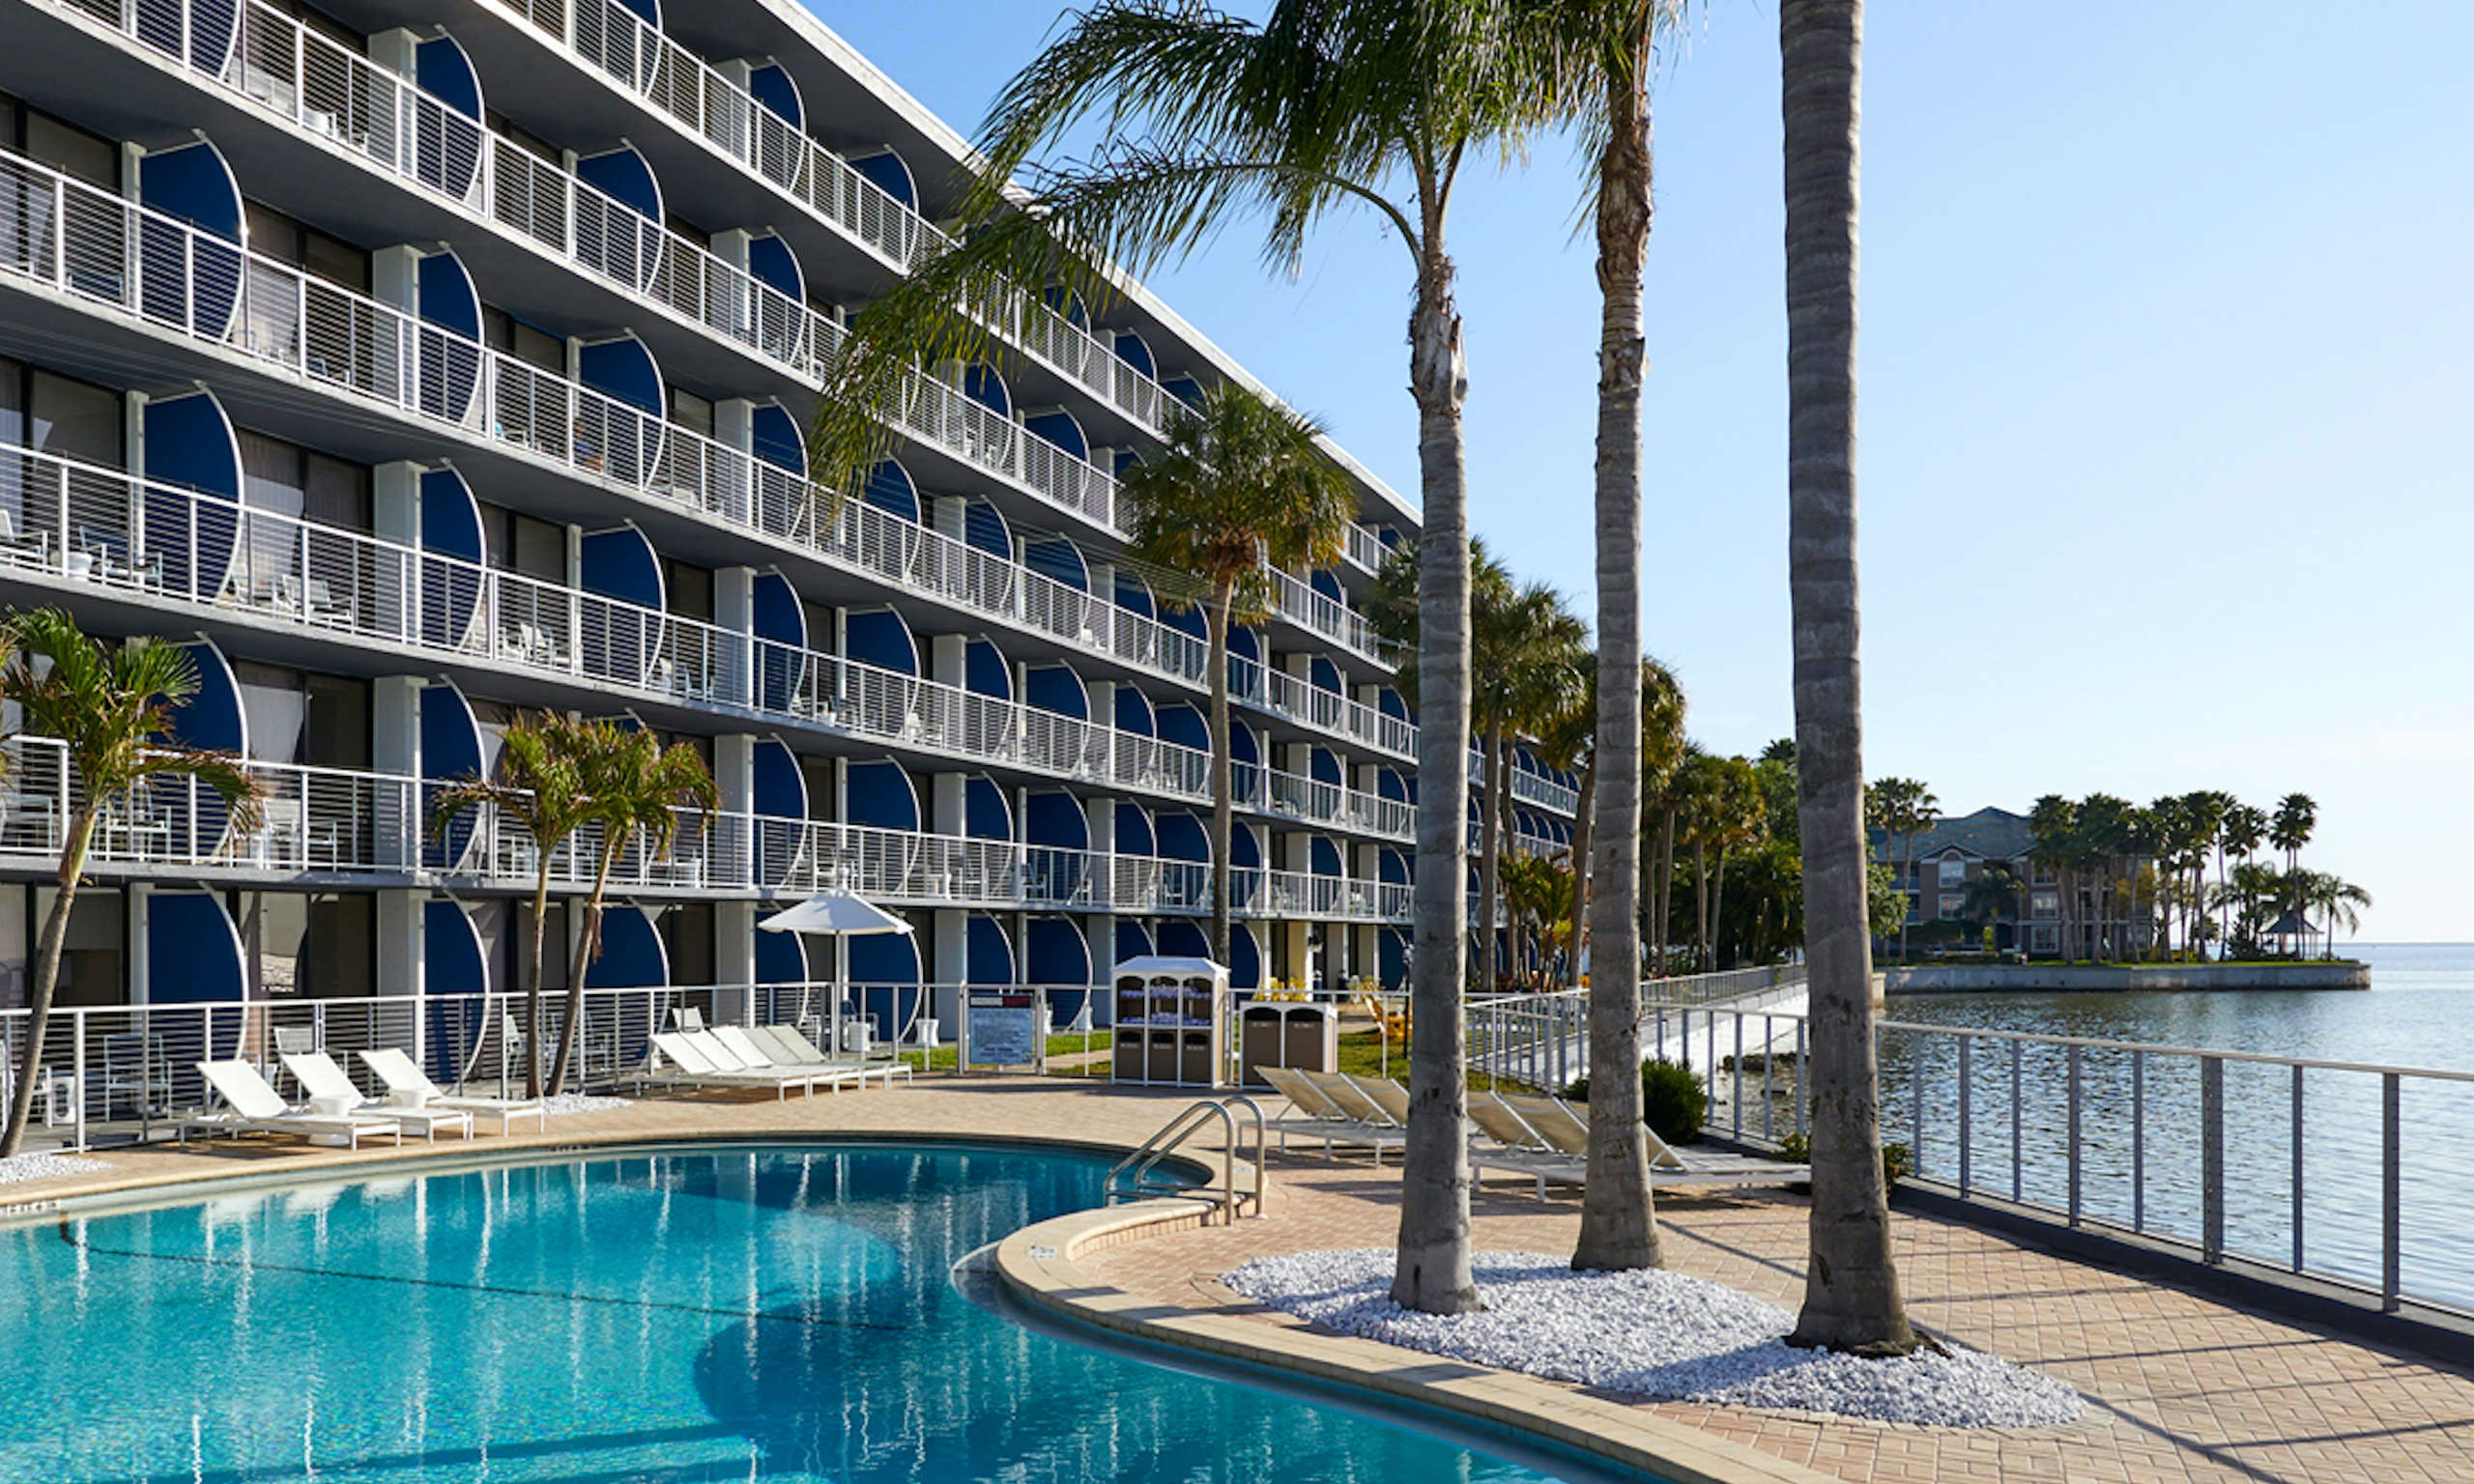 Cheap Hotels in Clearwater